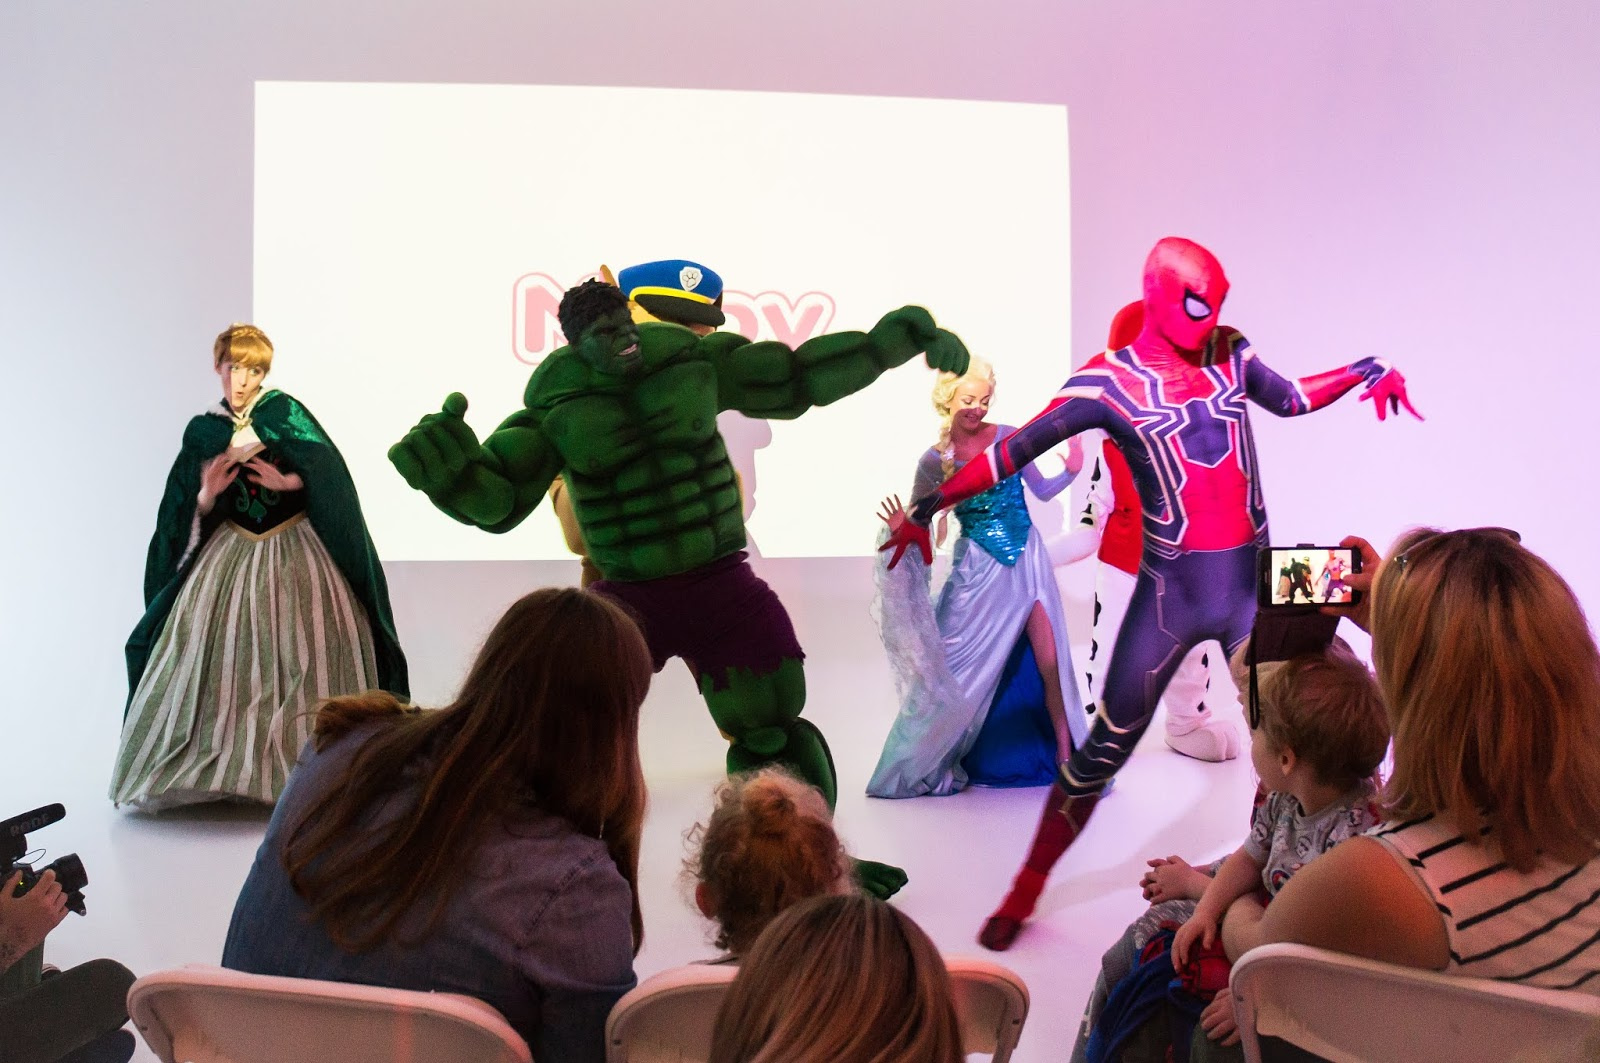 life size cartoon characters performing dance routine with parents and children watching at nuby big reveal event